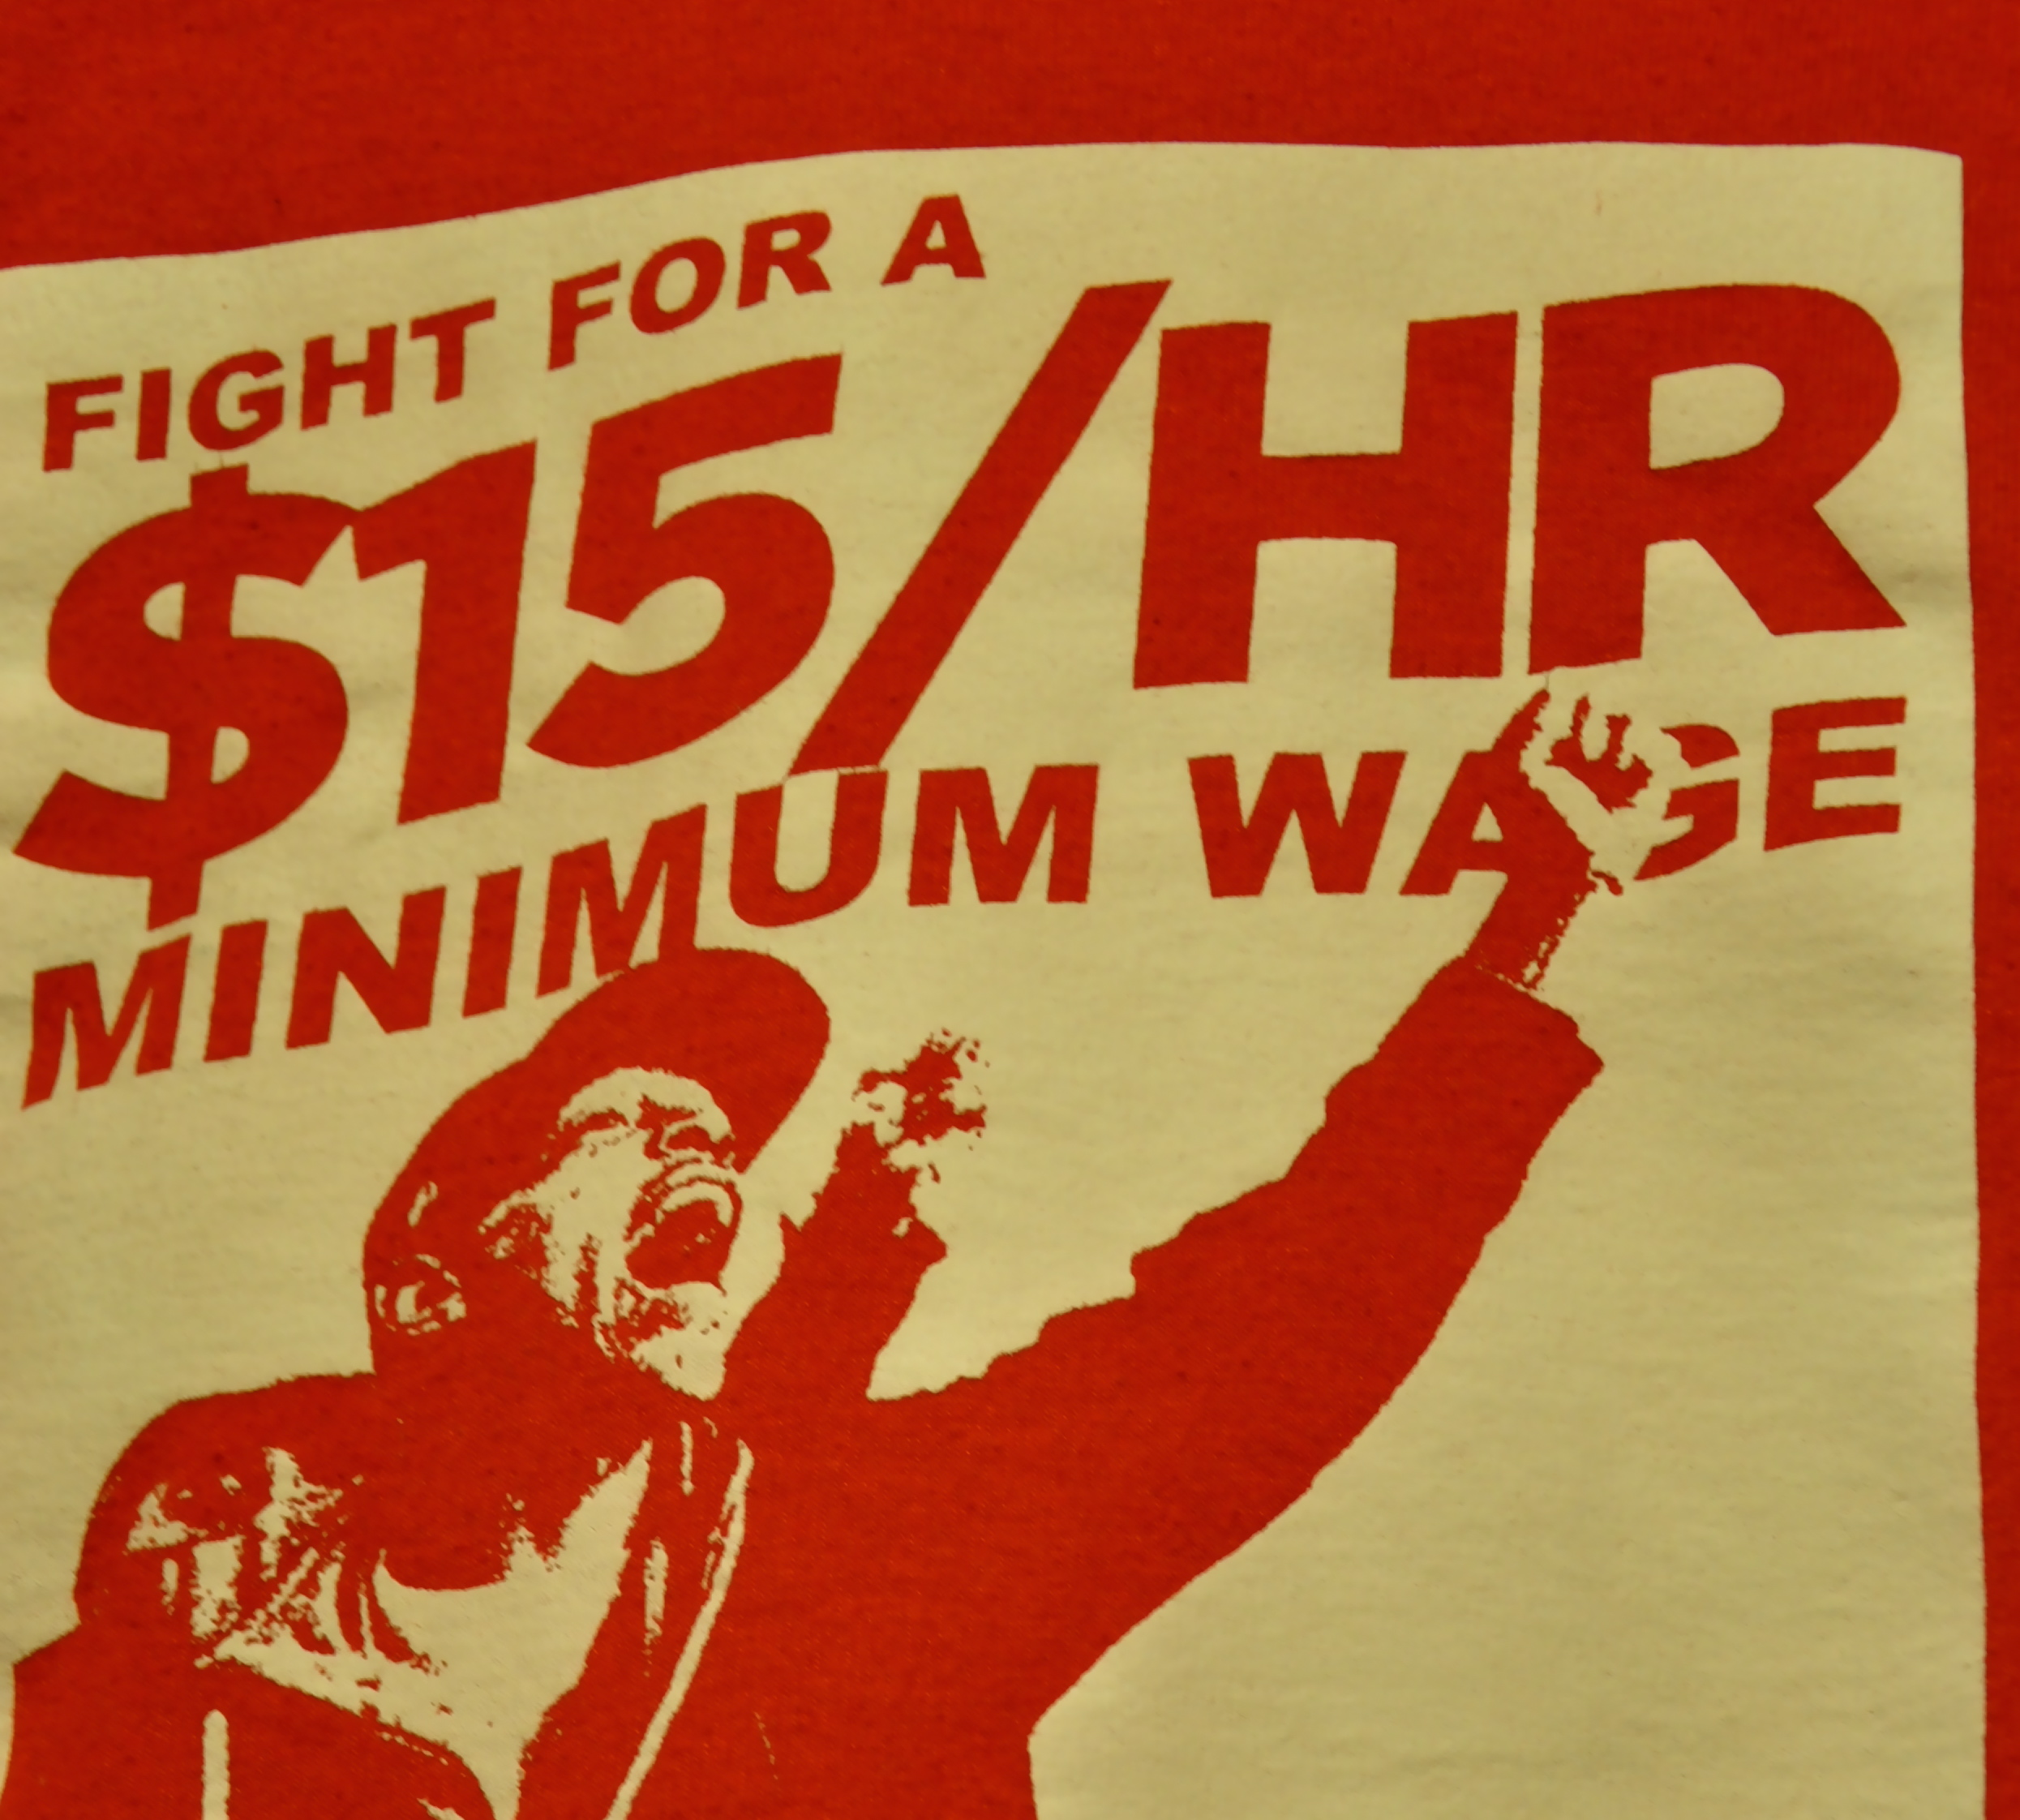 Fight for 15, Fight for the Working Class, Fight for Justice, Fight for Freedom. Solidarity!